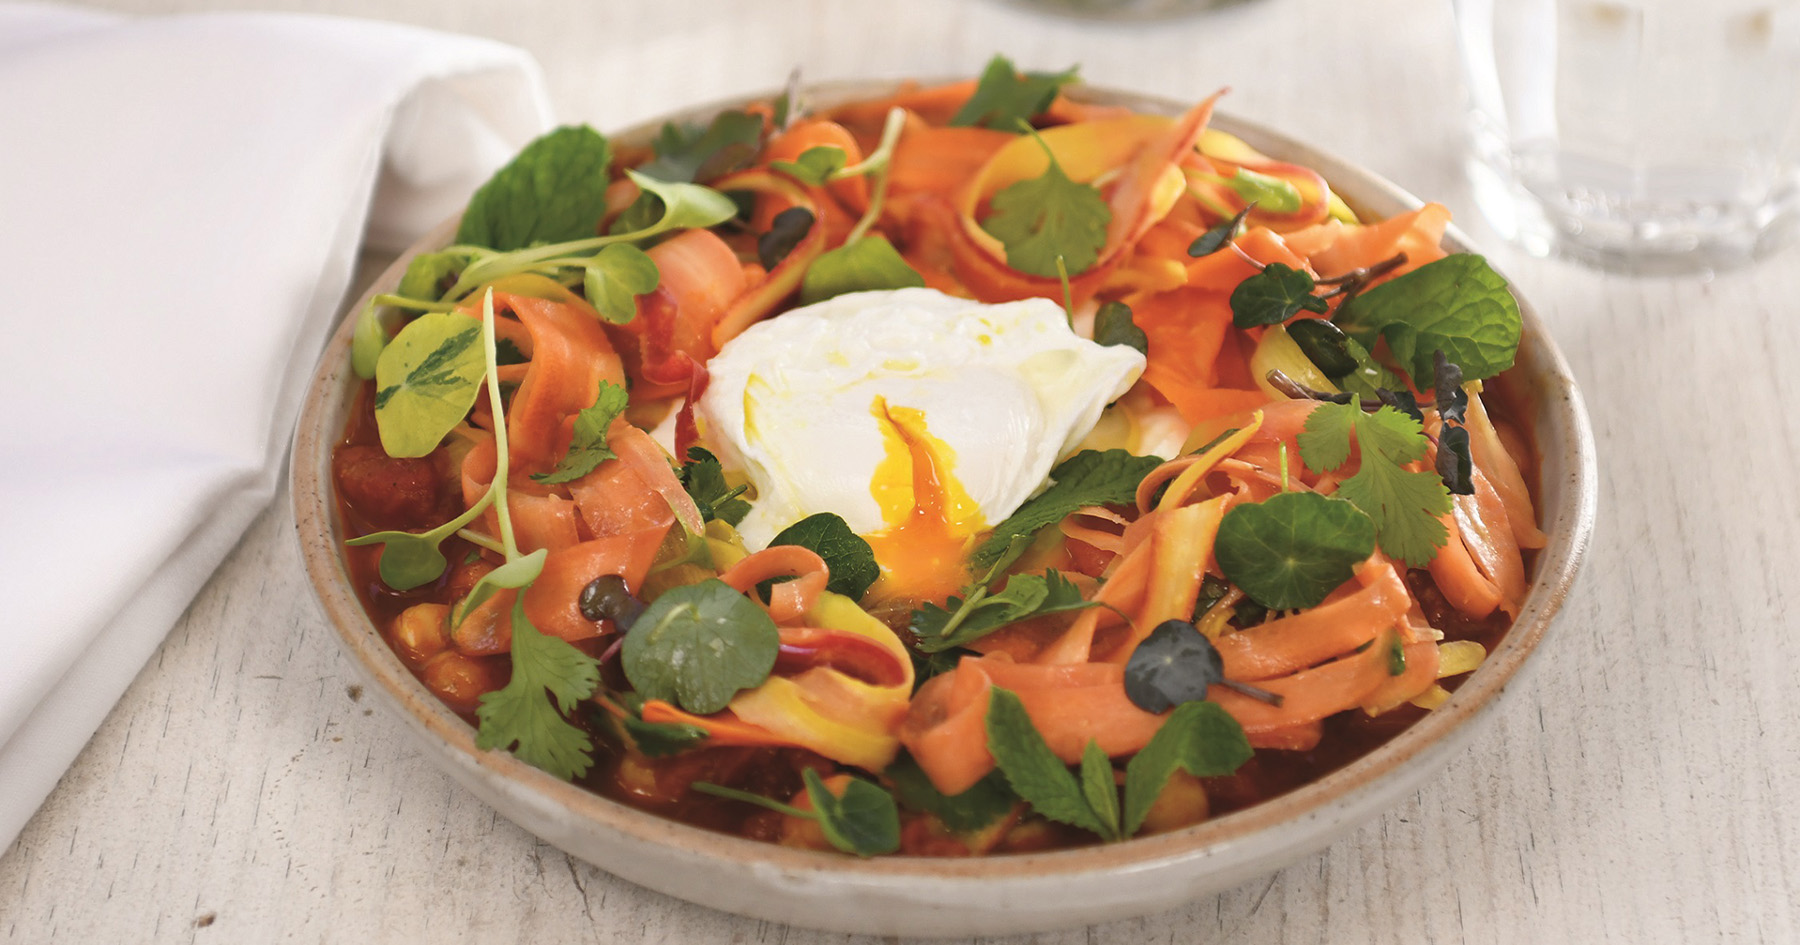 Chickpeas with Spiced Tomato Sauce, Carrot & Preserved Lemon Salad and Poached Eggs